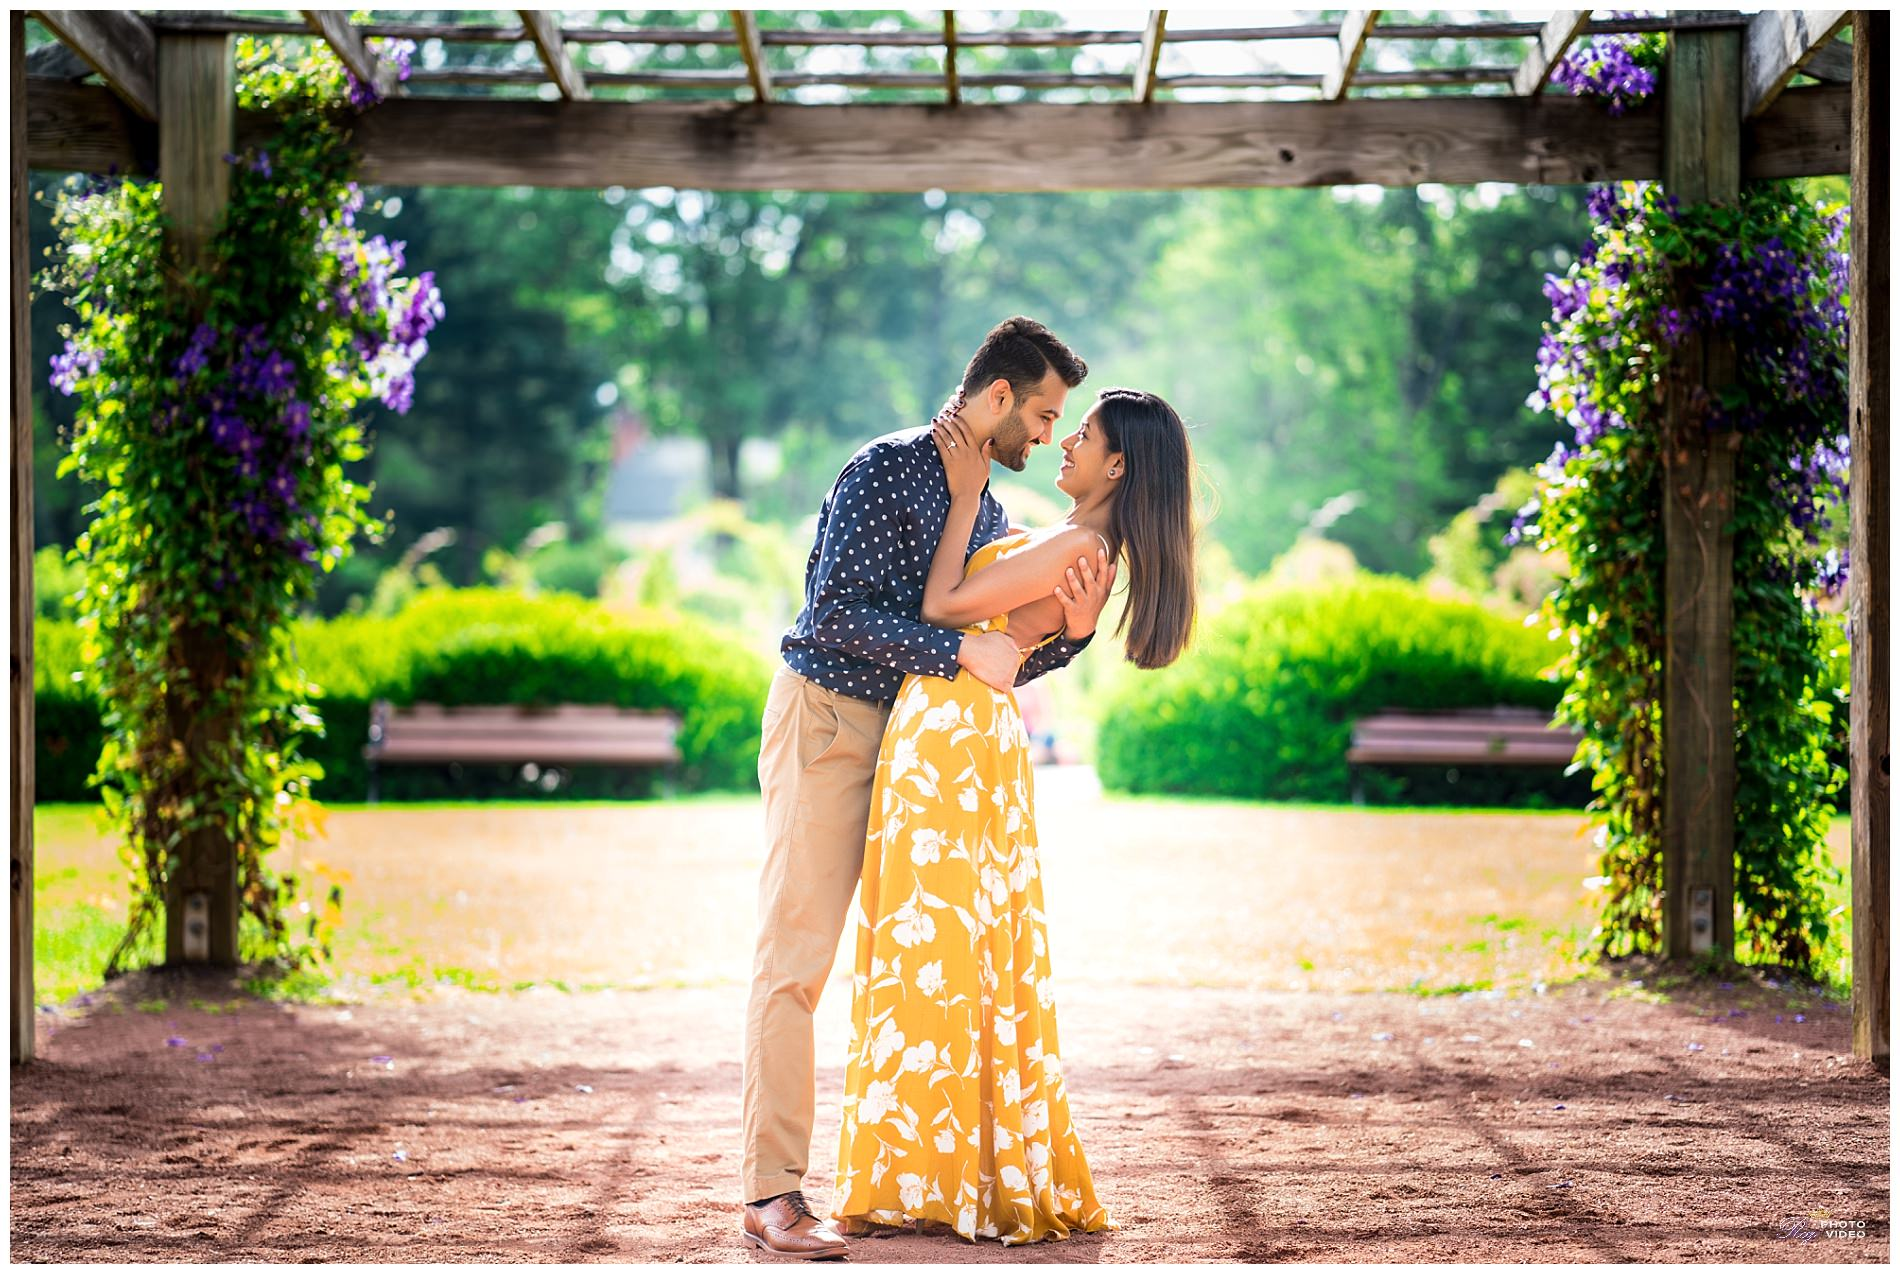 Elizabeth-Park-Rose-Garden-Hartford-CT-Engagement-Shoot-Pratiti-Suraj-17.jpg